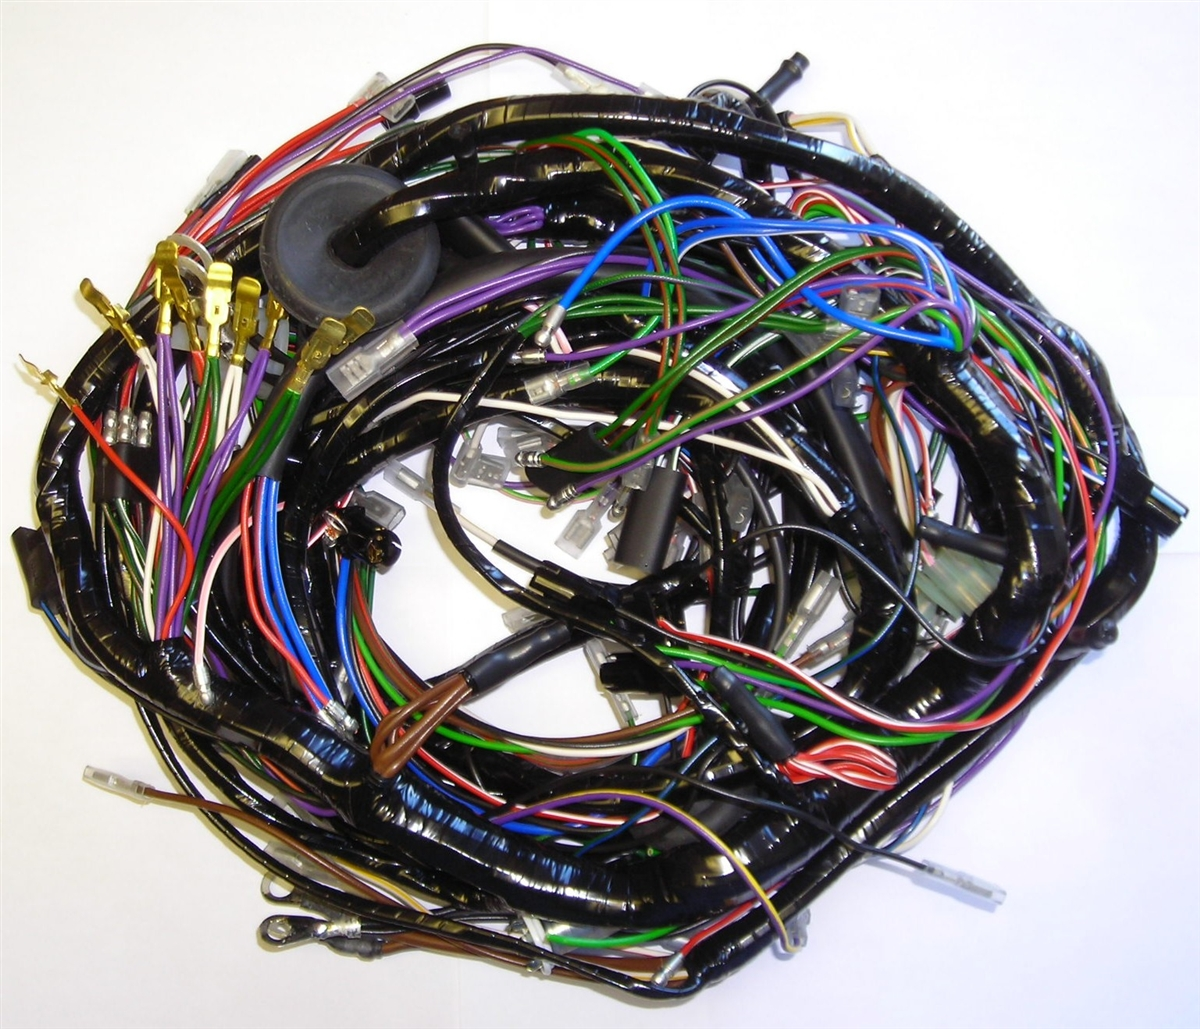 1523 2?1354101756 spitfire 1500 main wiring harness 73 triumph spitfire 1500 wiring harness at readyjetset.co